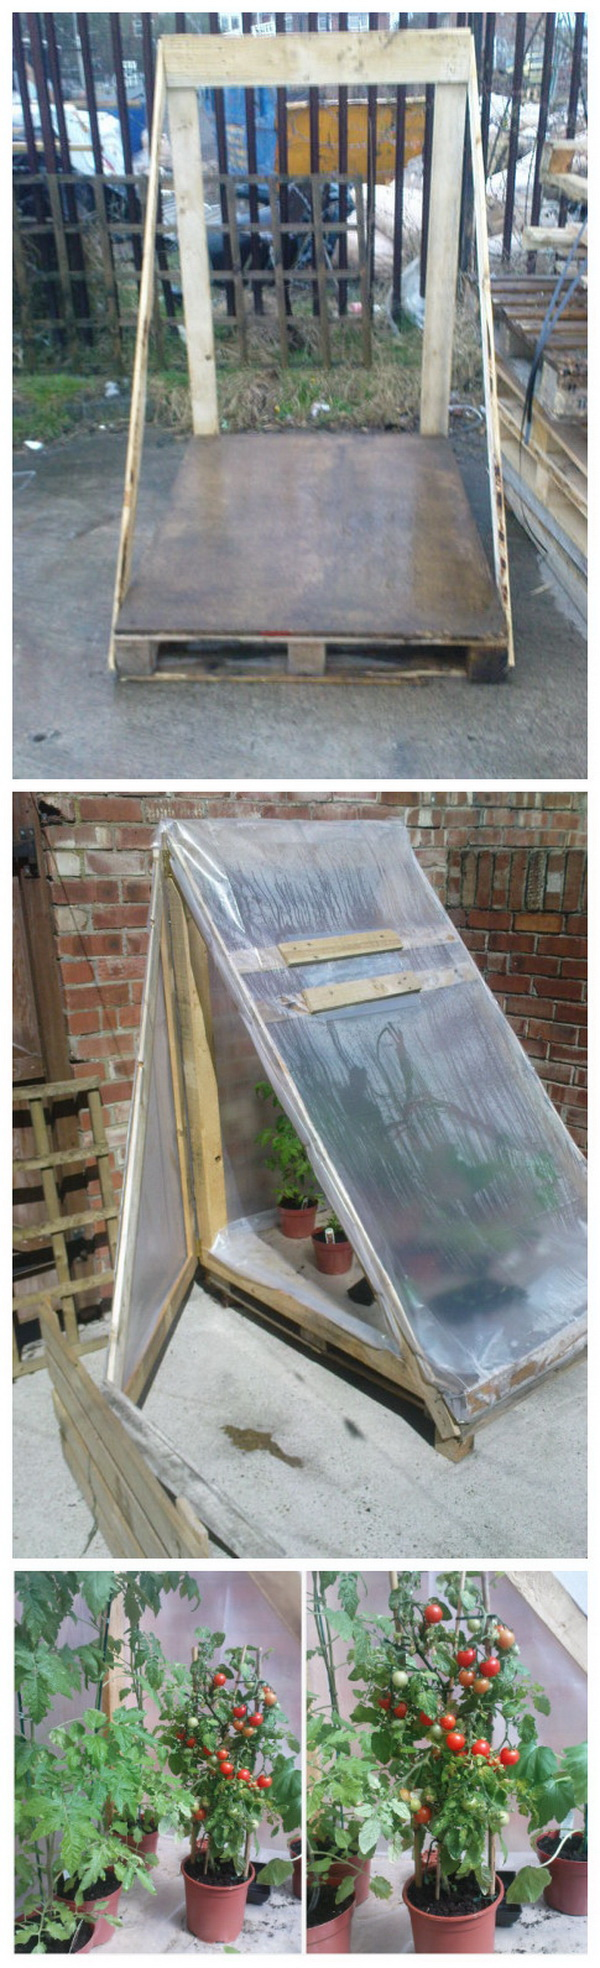 DIY Greenhouse from Pallet.